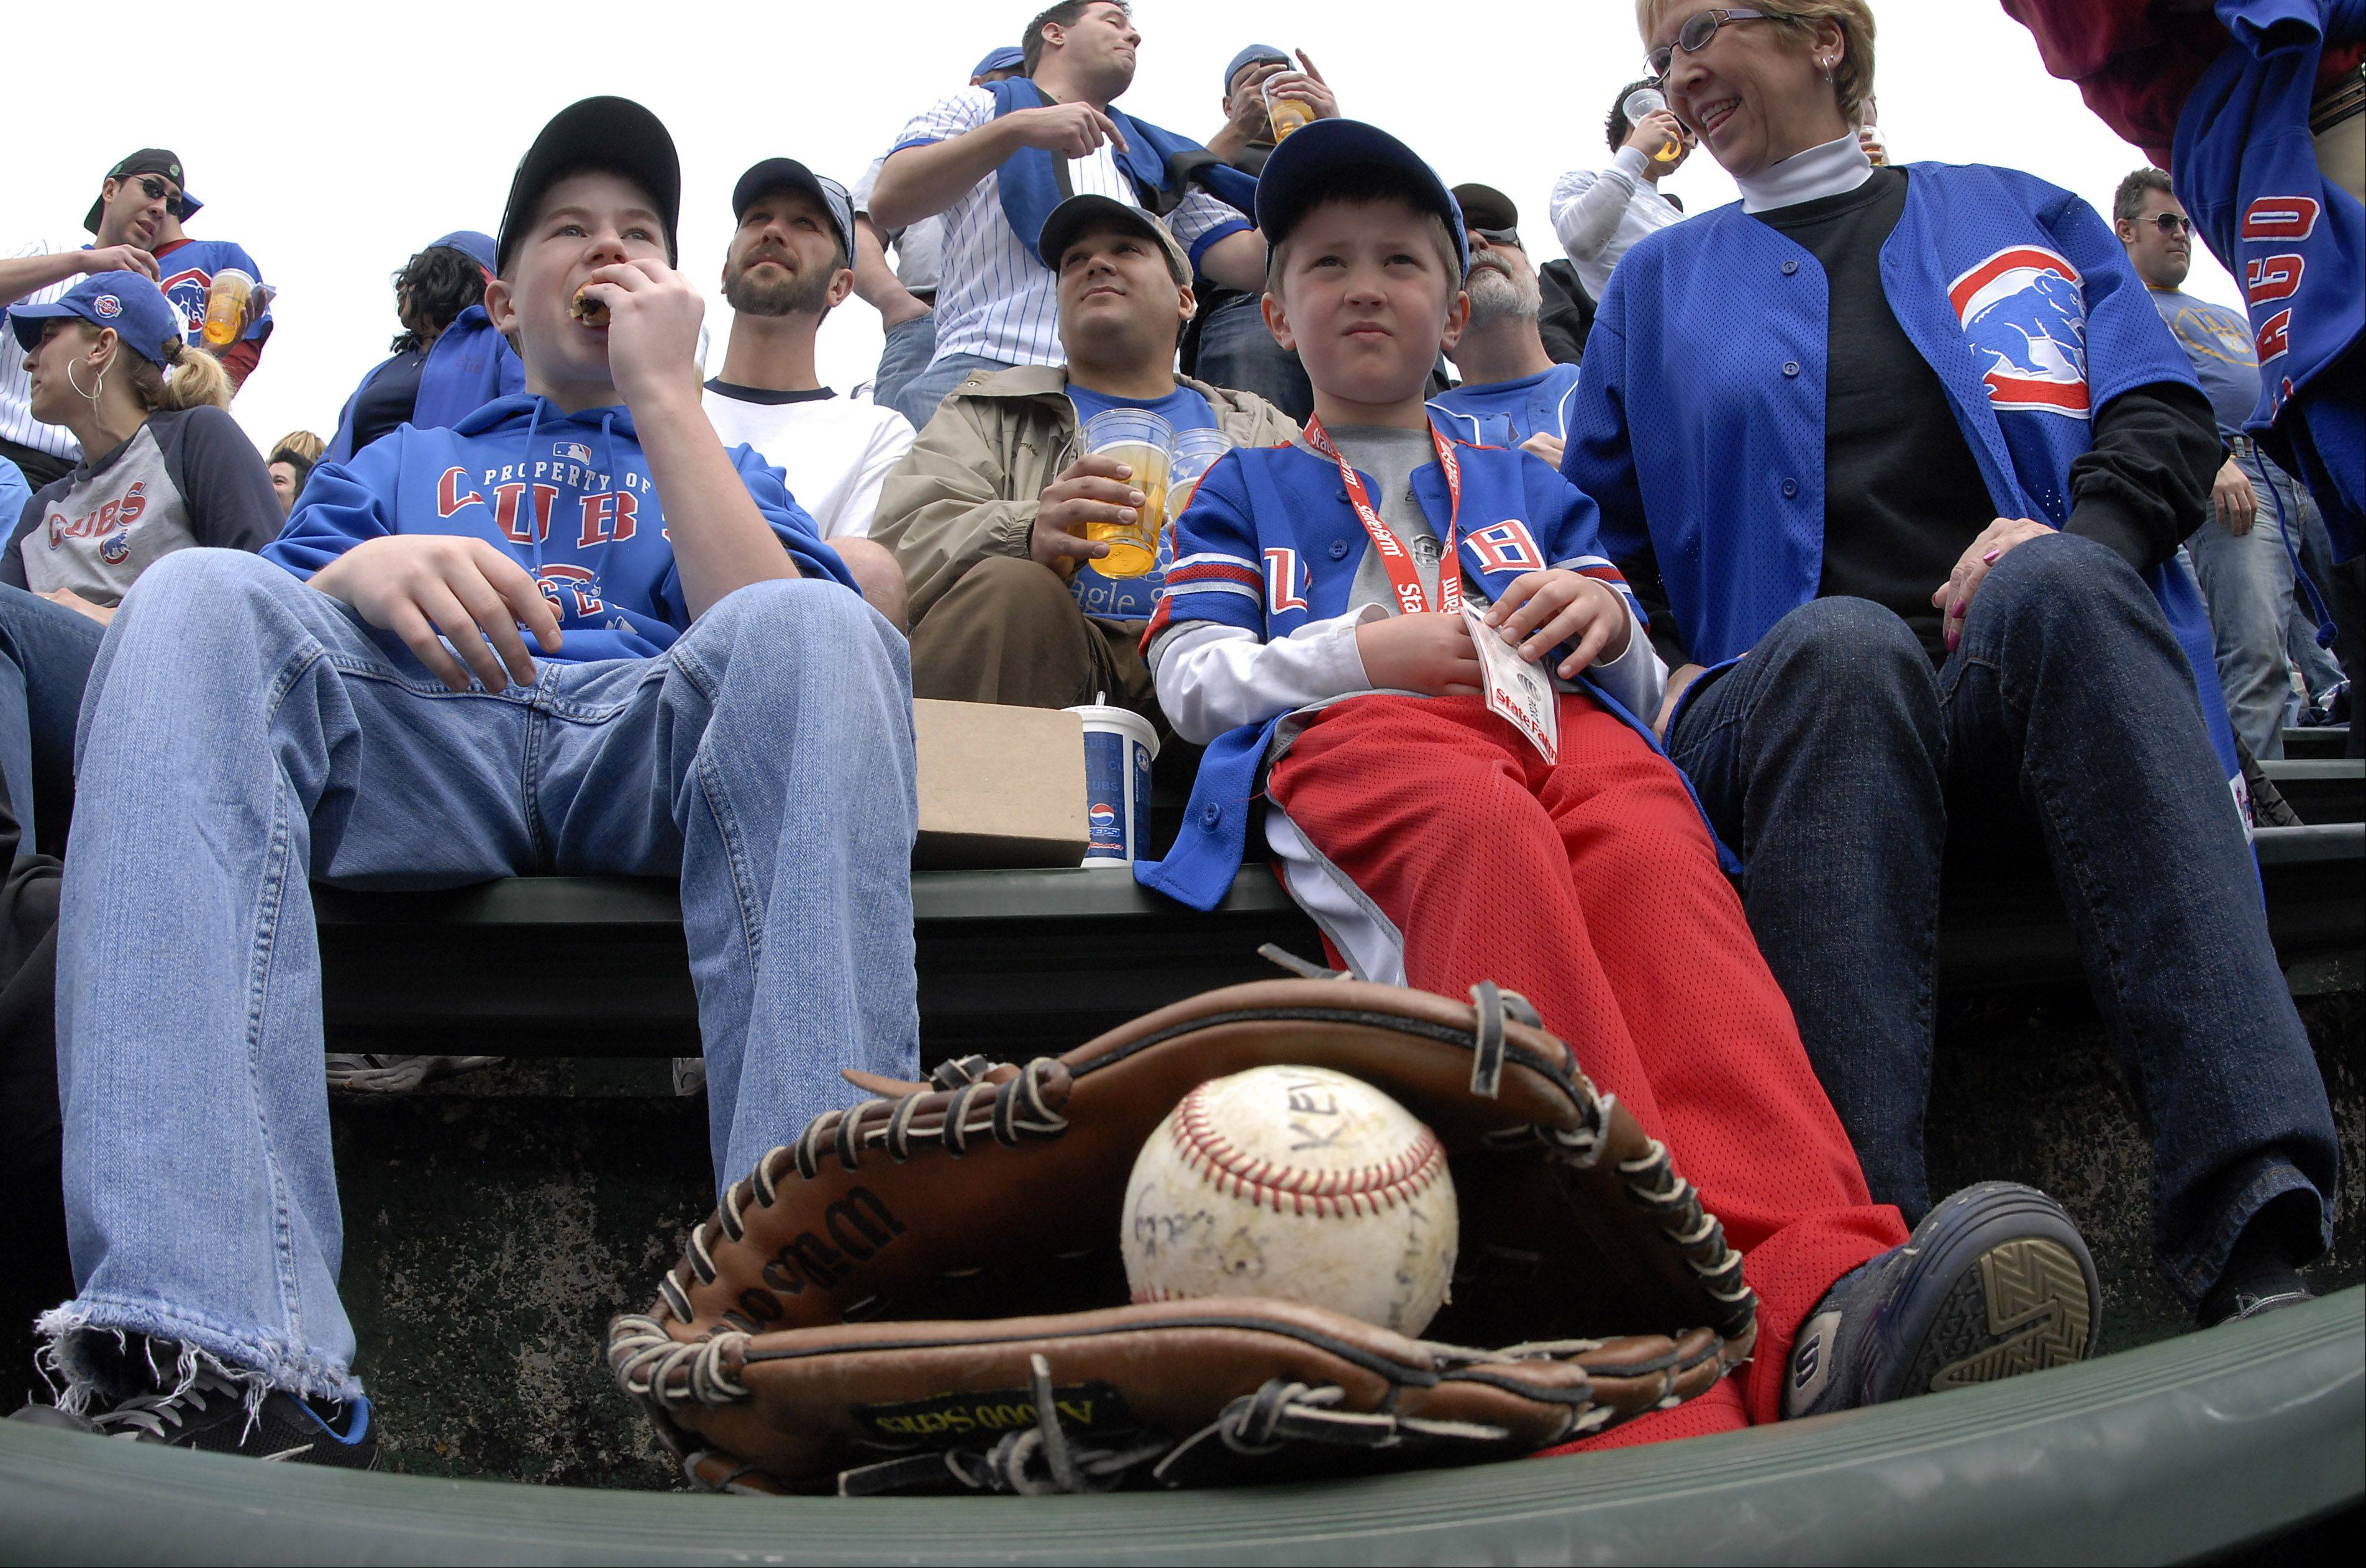 Getting a ball is one the Opening Day thrills experienced through the years by the Hruby family of Wheaton. In this 2010 photograph of the Wrigley Field bleachers, friend Kevin Riemer, 14, left, of Wheaton, cheers alongside Cal Hruby, 5, center, of Geneva, as Cal's grandmother Debra Hruby enjoys a warmer day than is expected for this year's opener.